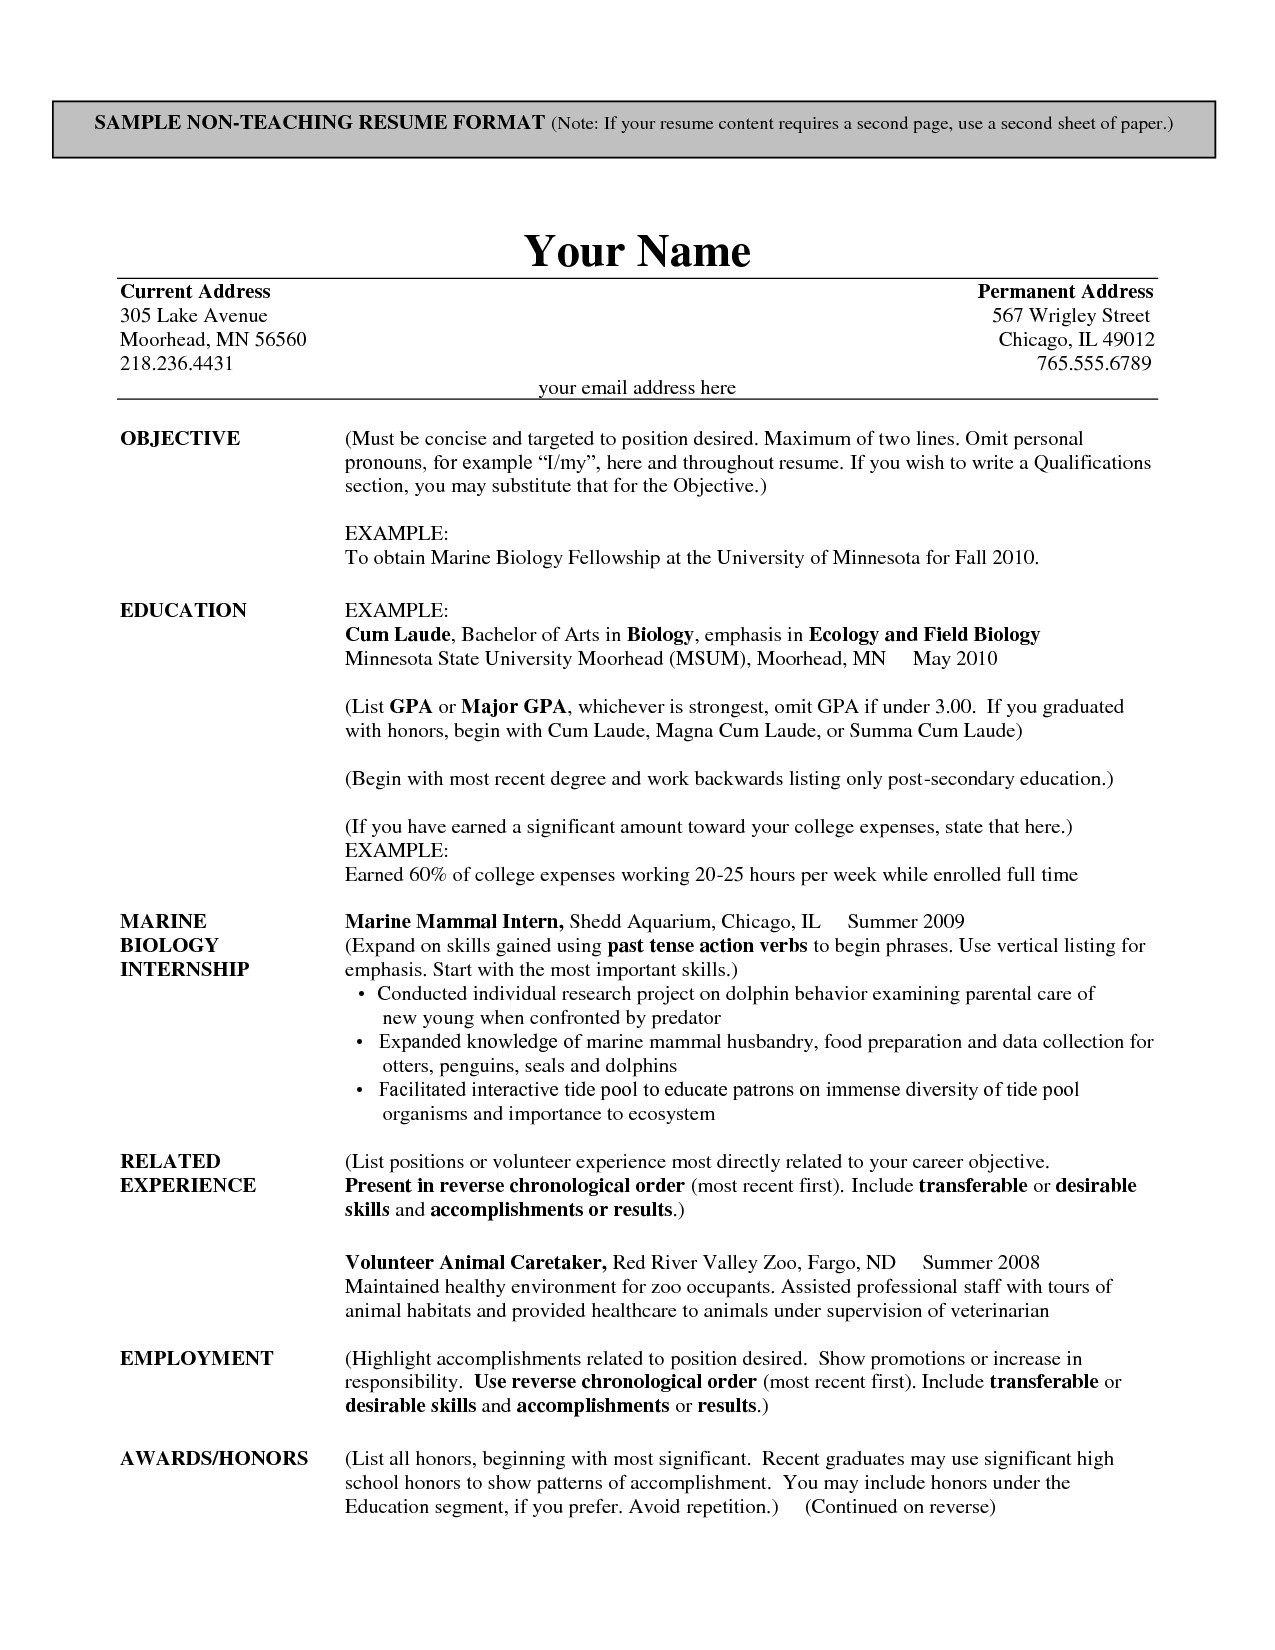 College Transfer Resume - Transferable Skills Cover Letter Refrence Inspirational Job Resume